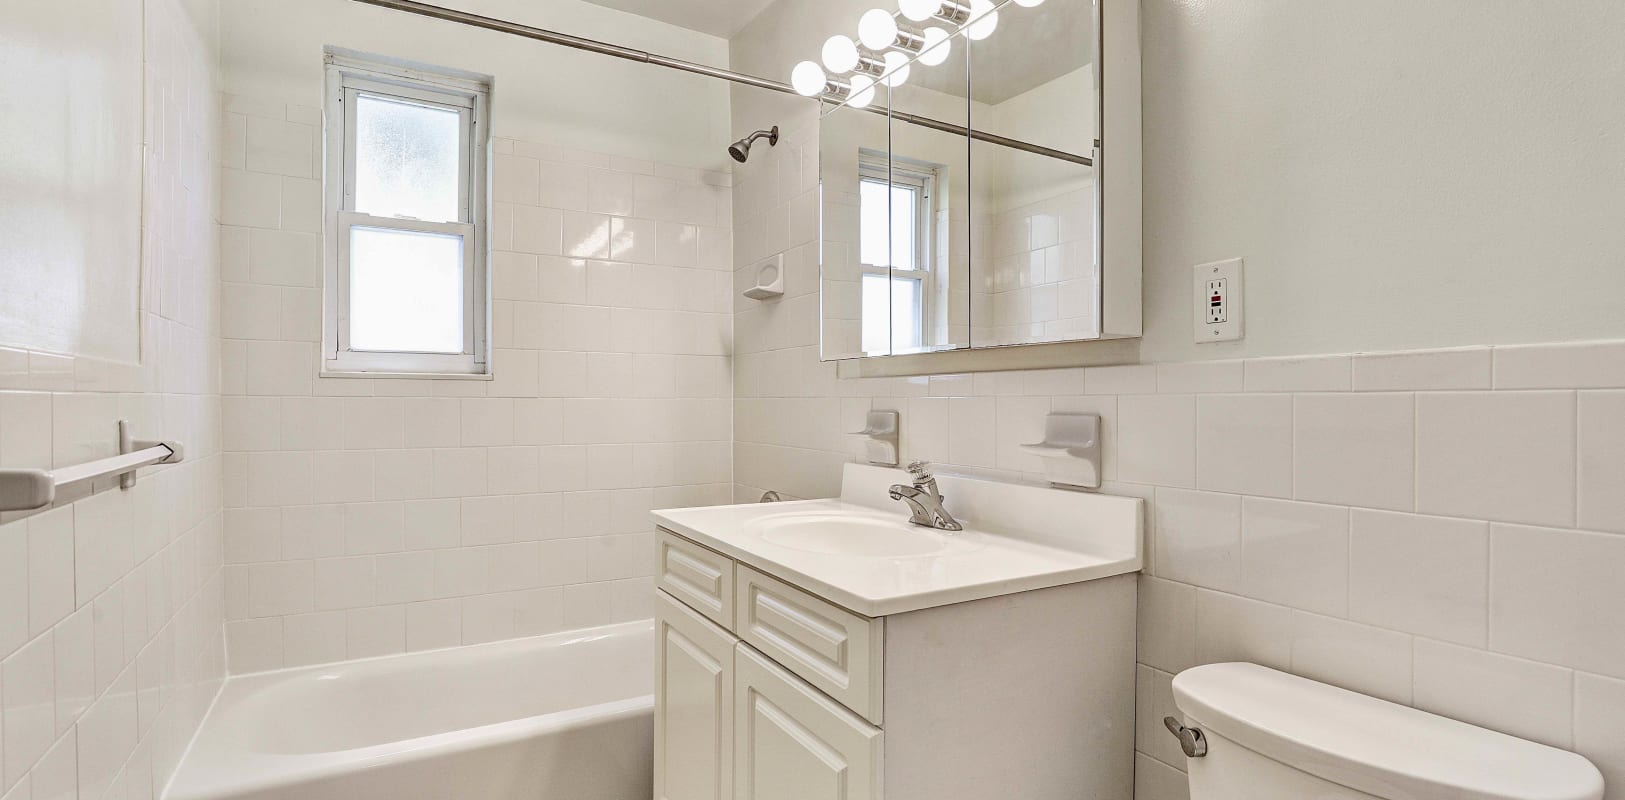 Clean bathroom with outside window at Rosedale Manor in Madison, New Jersey